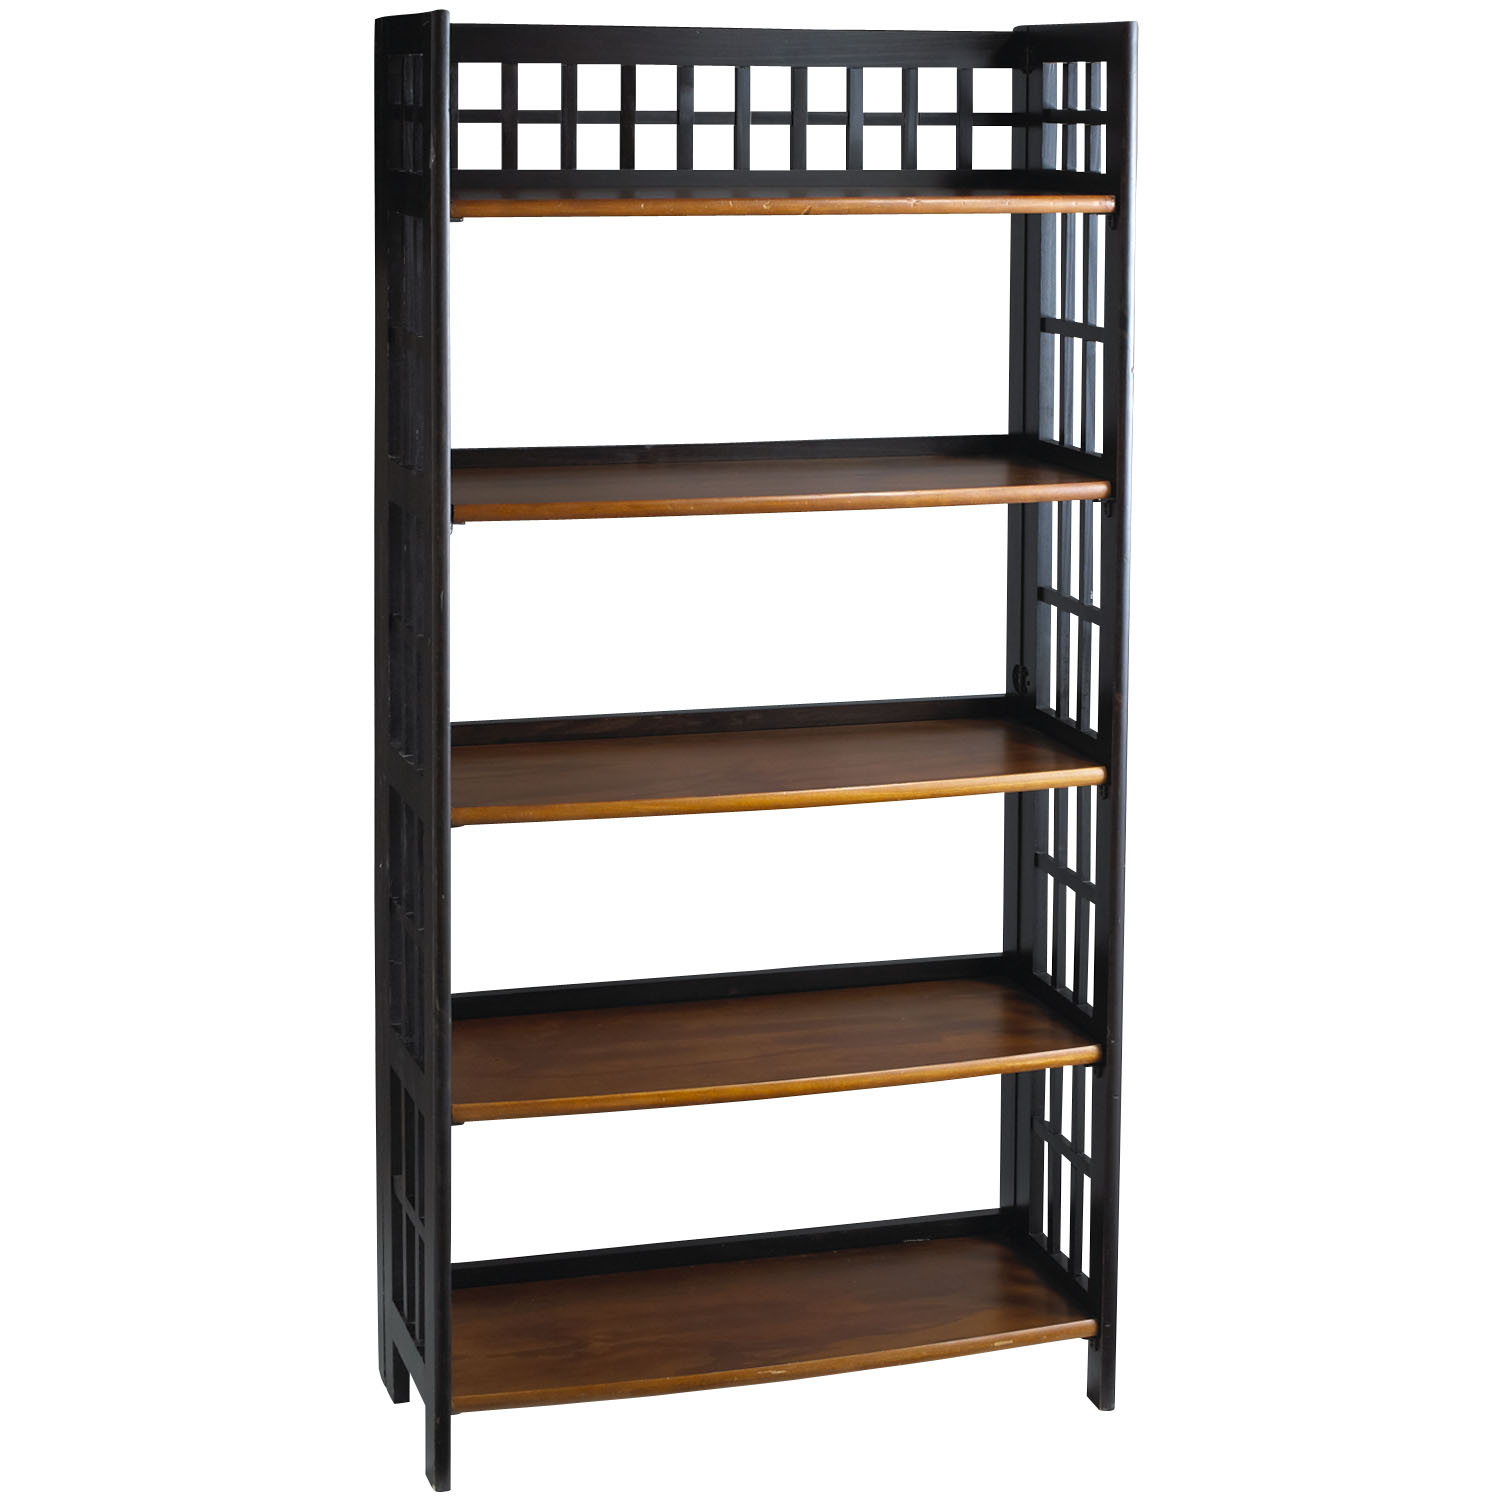 Fretted Rubbed Black Tall Folding Shelf